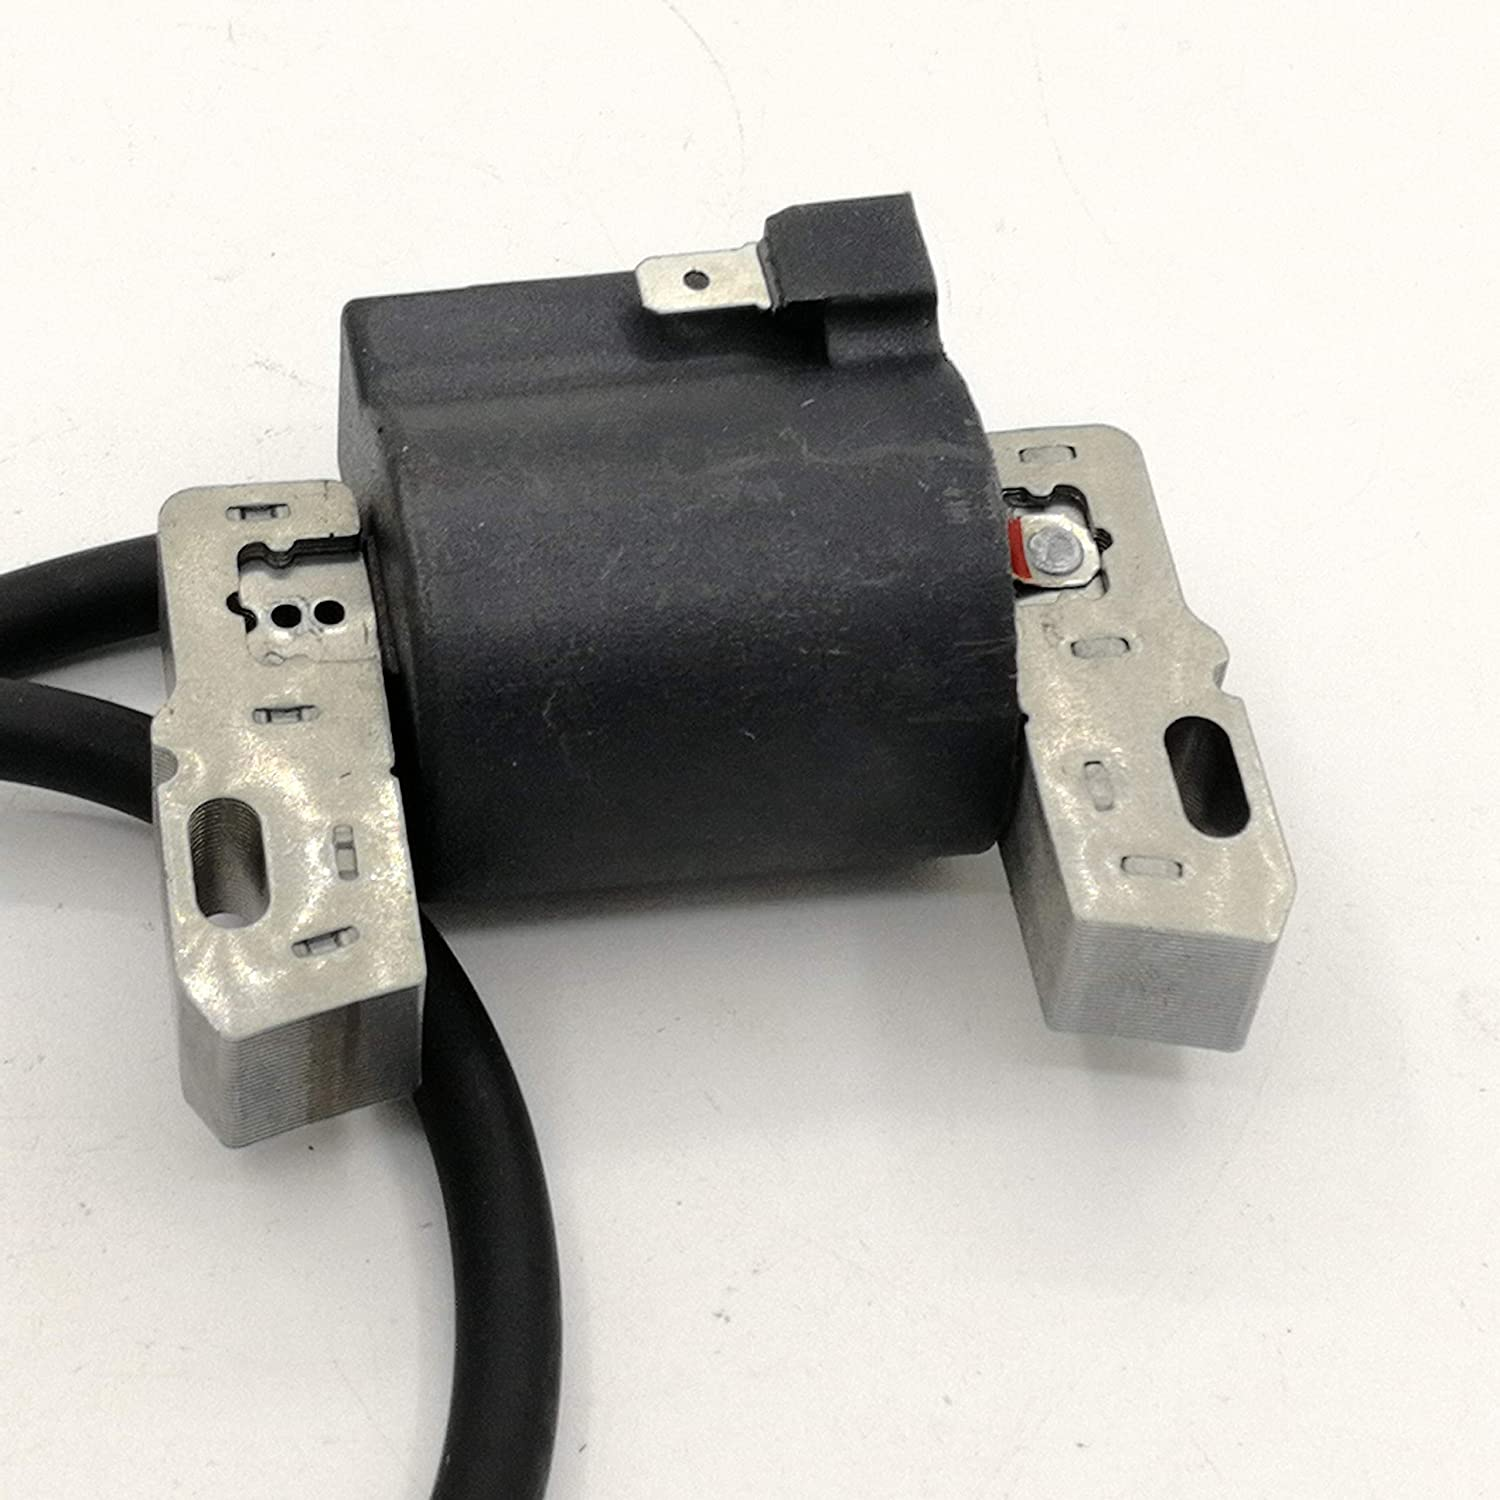 Replacement Ignition Coil Module Spark Plug for Briggs /& And Stratton Armature Magneto 591459 bs-492341 490586 495859 492341 289707 311707 490586 491312 690248 715231 Engine Lawm Mower parts